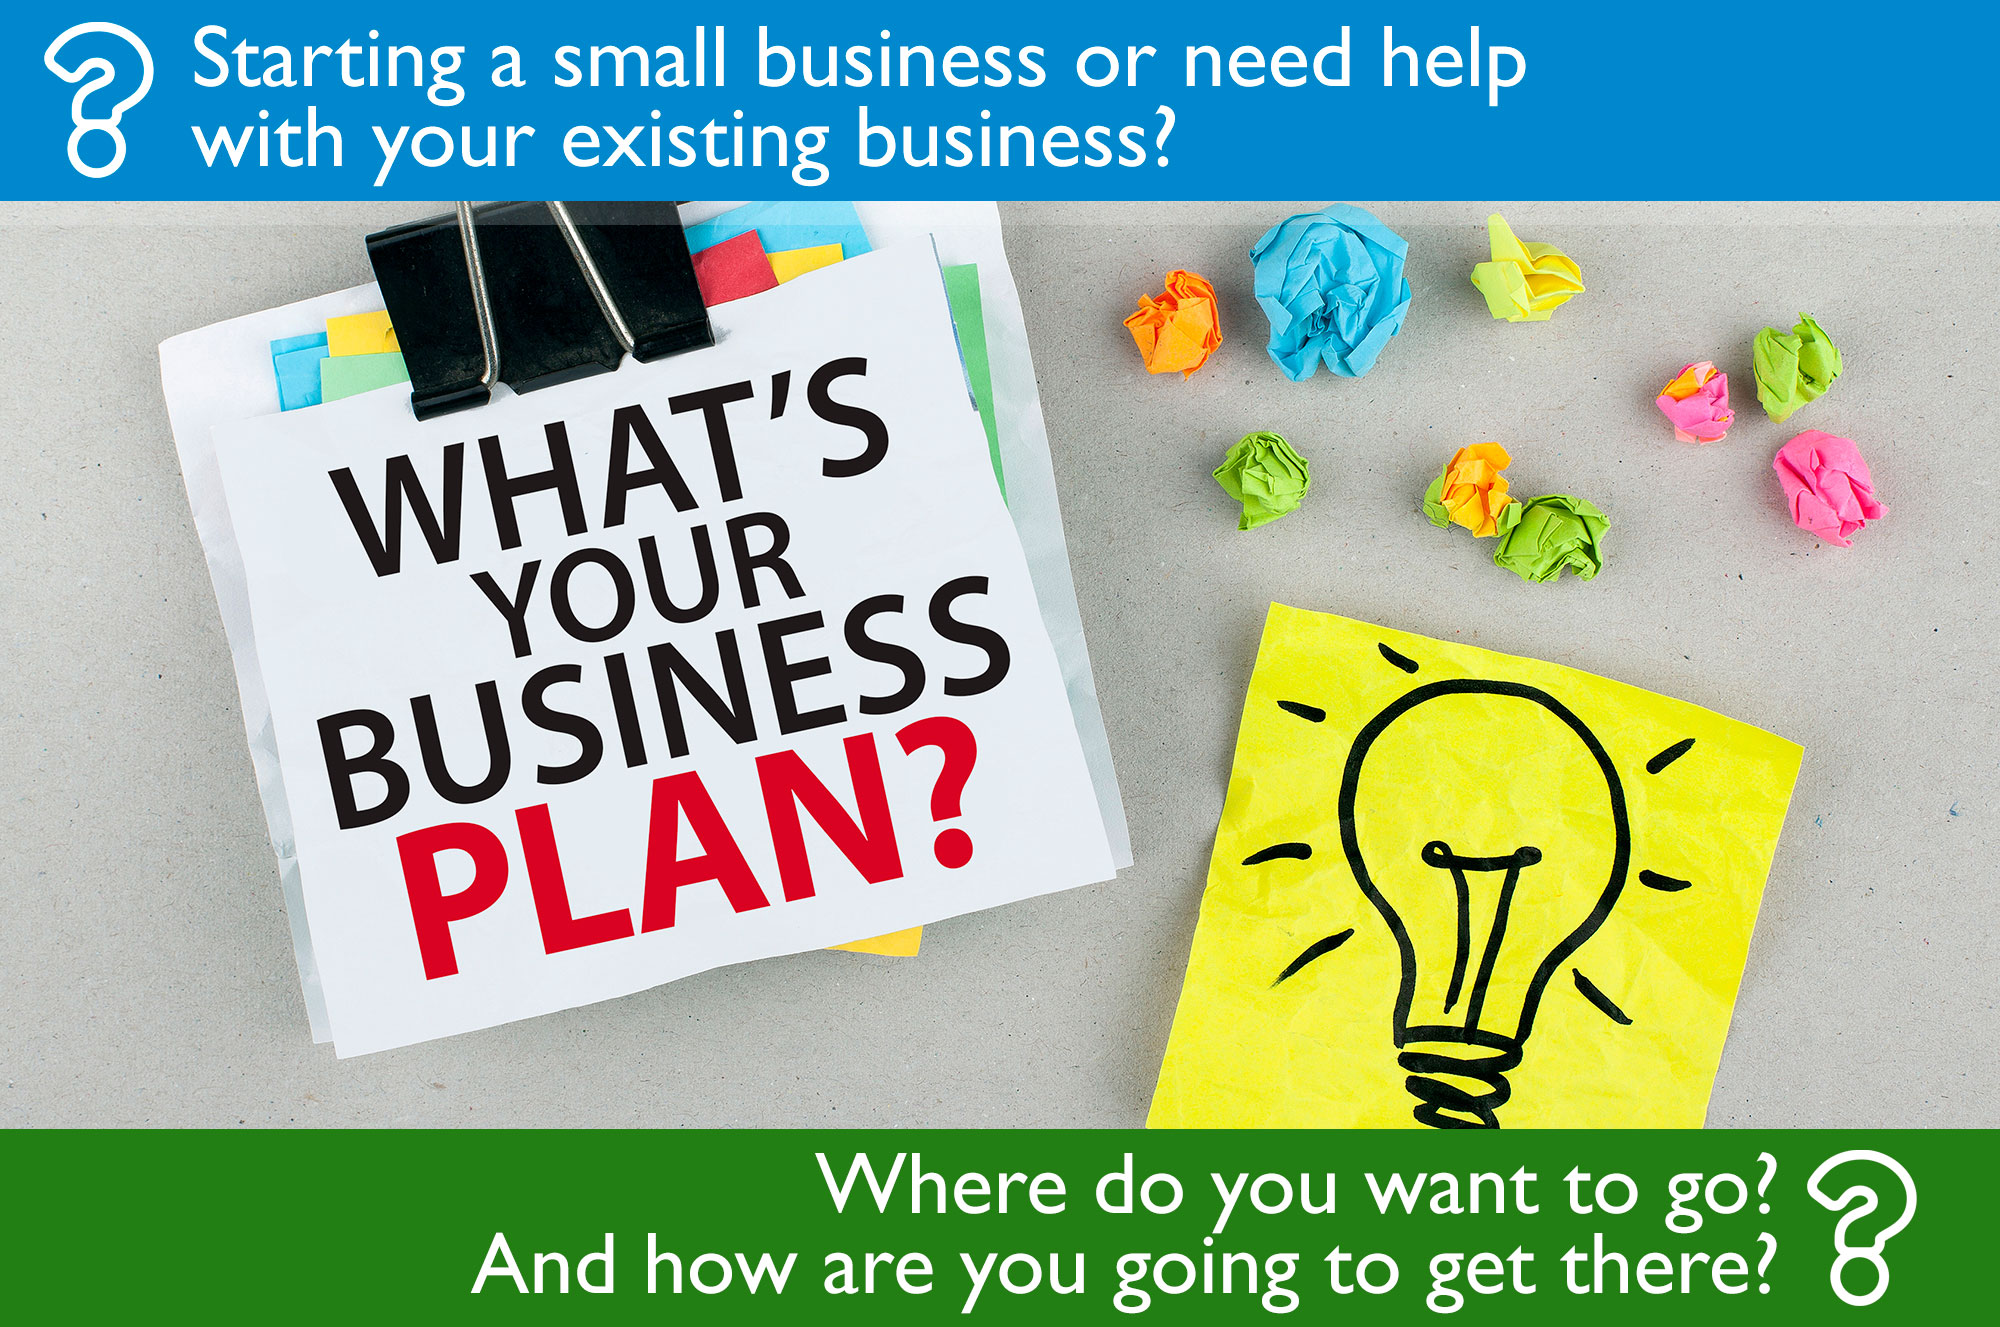 Starting a small business or need help with your existing business? Where do you want to go? And how are you going to get there?